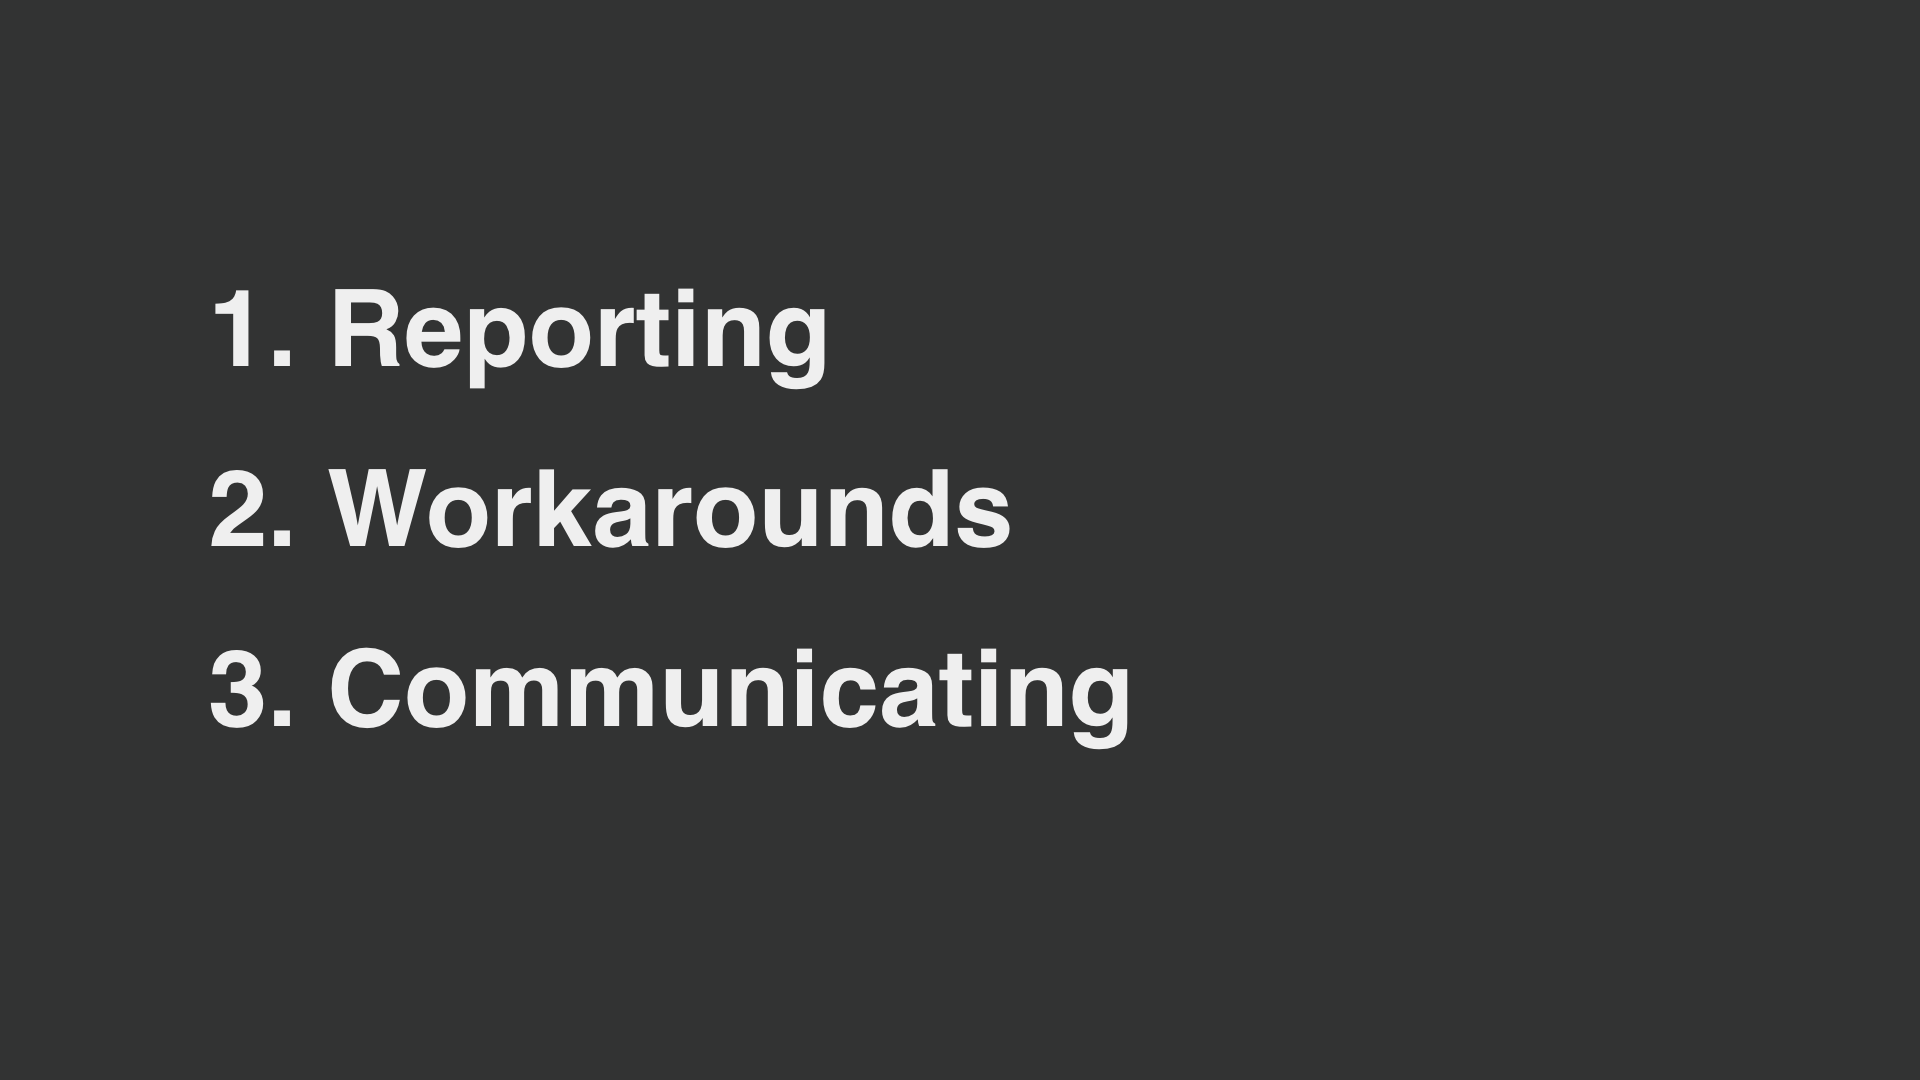 text: 1. Reporting, 2. Workarounds, 3. Communicating